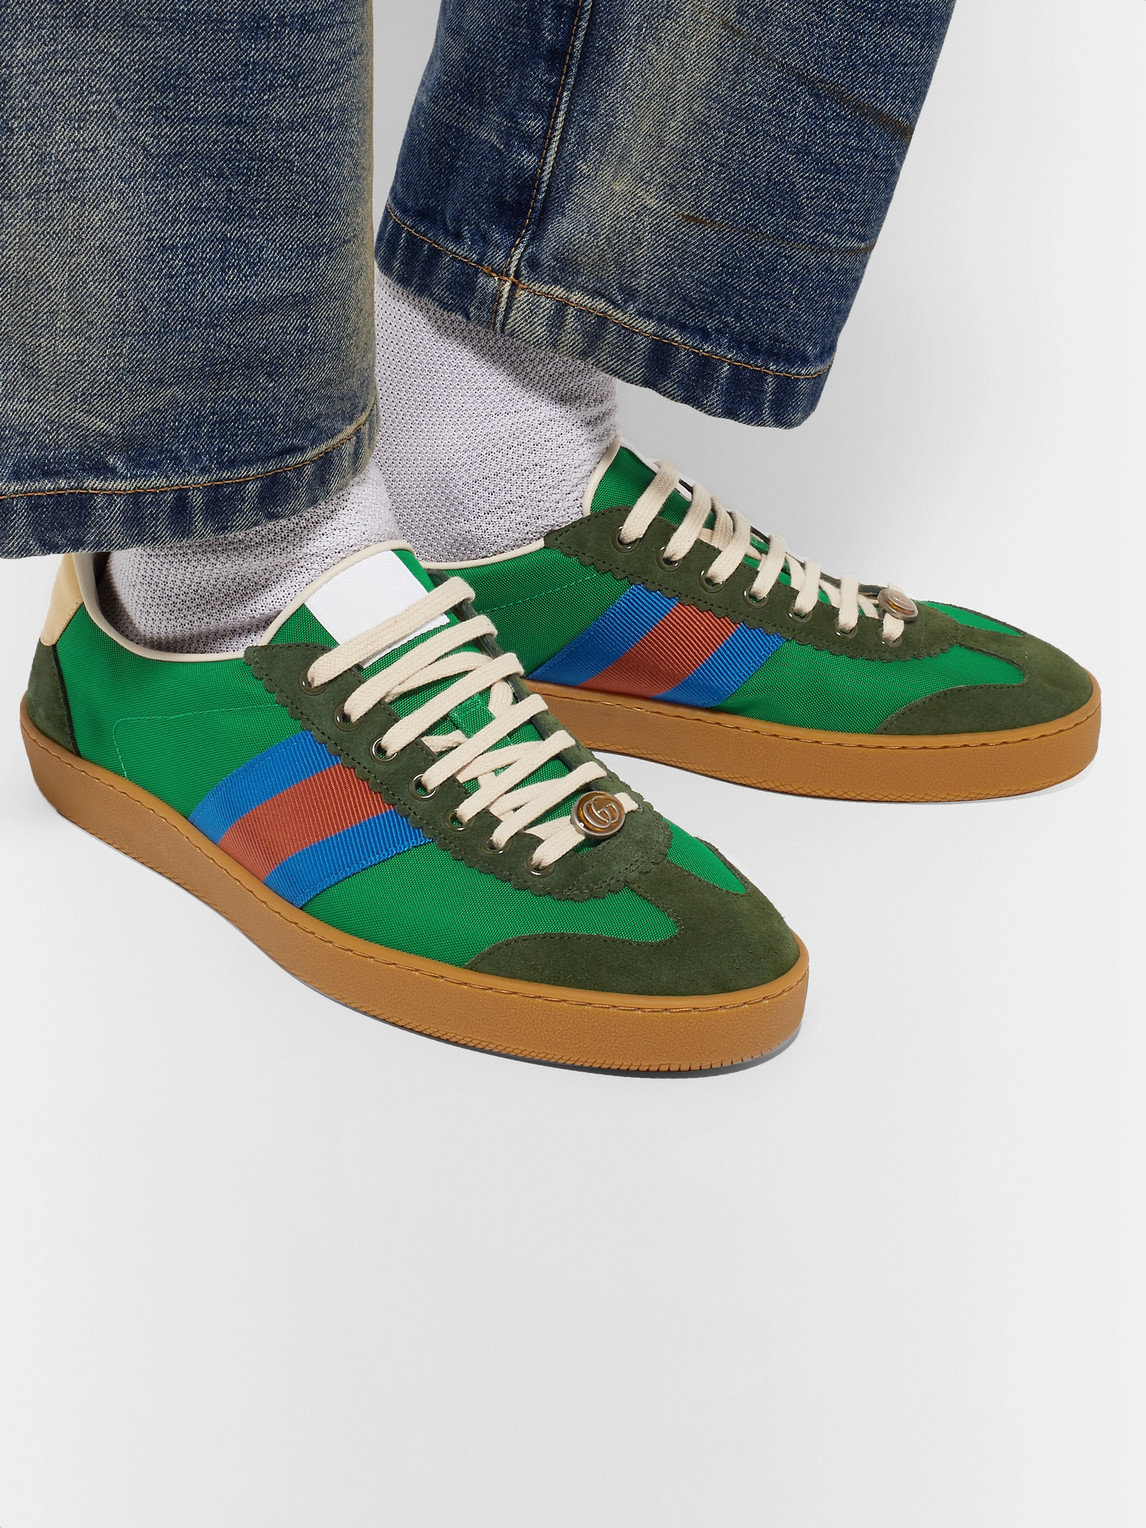 Gucci Sneakers JBG WEBBING, SUEDE AND LEATHER-TRIMMED NYLON SNEAKERS